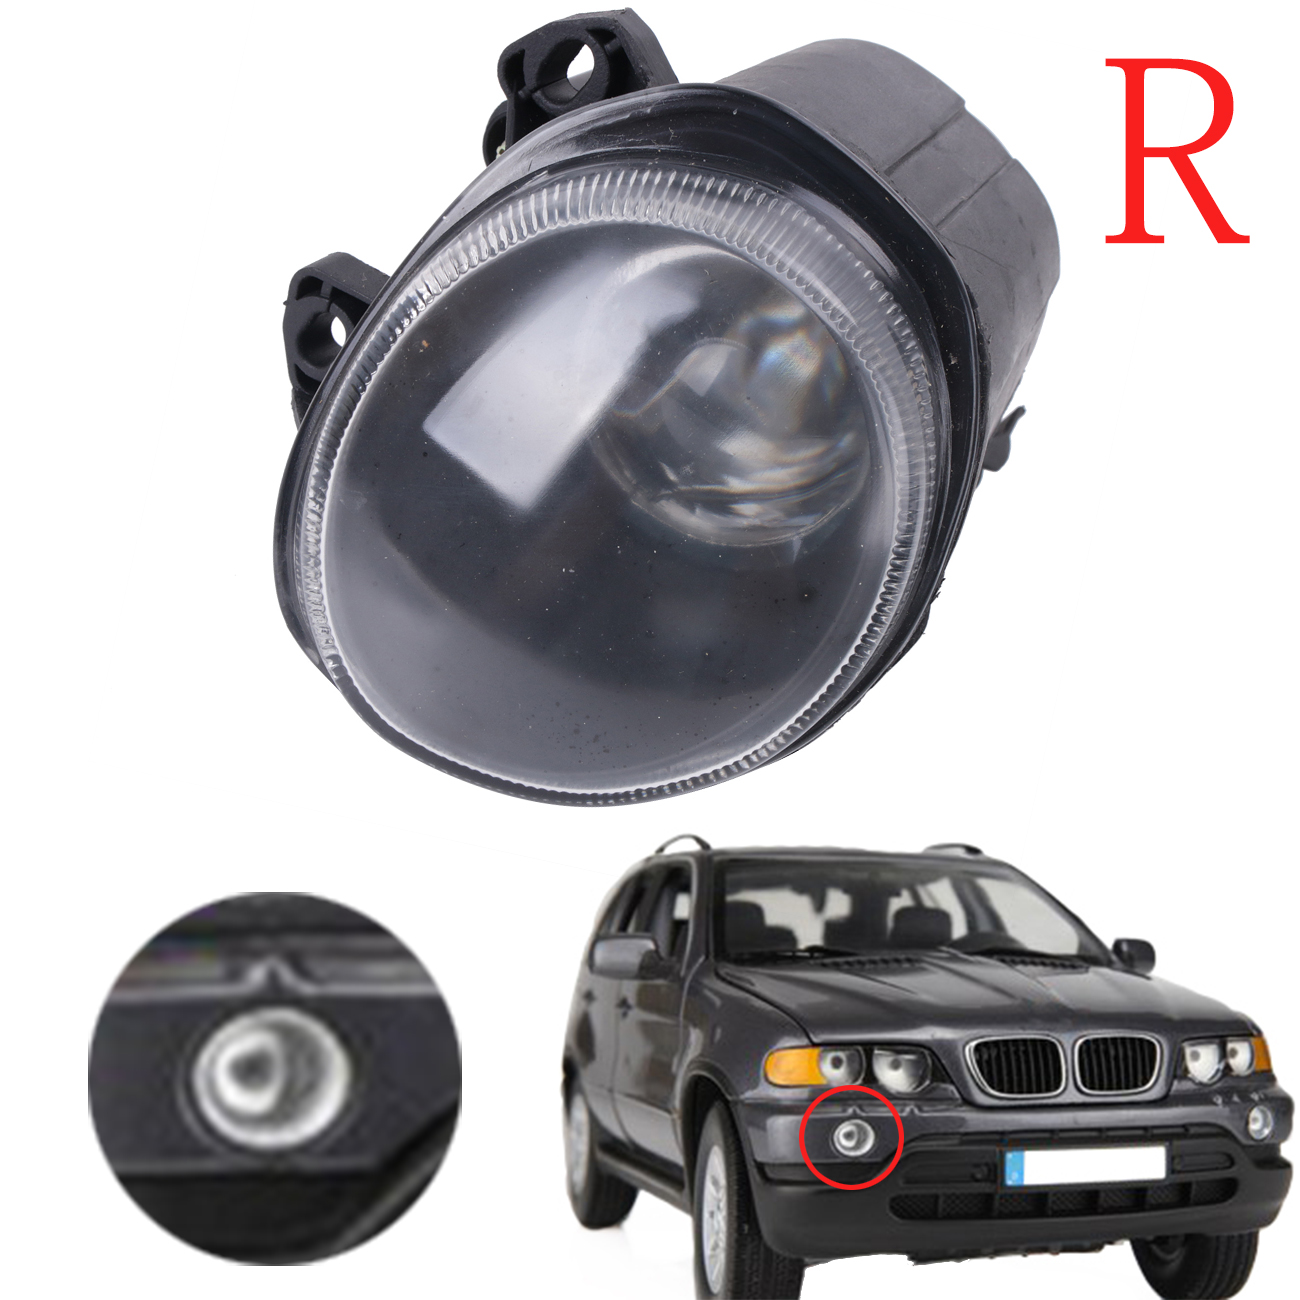 OEM 63178409026 Right Front Fog Light Clear Driving Lamp Foglamp Cover For BMW X5 E53 2000 2001 2002 Auto Car Stling #W087-R